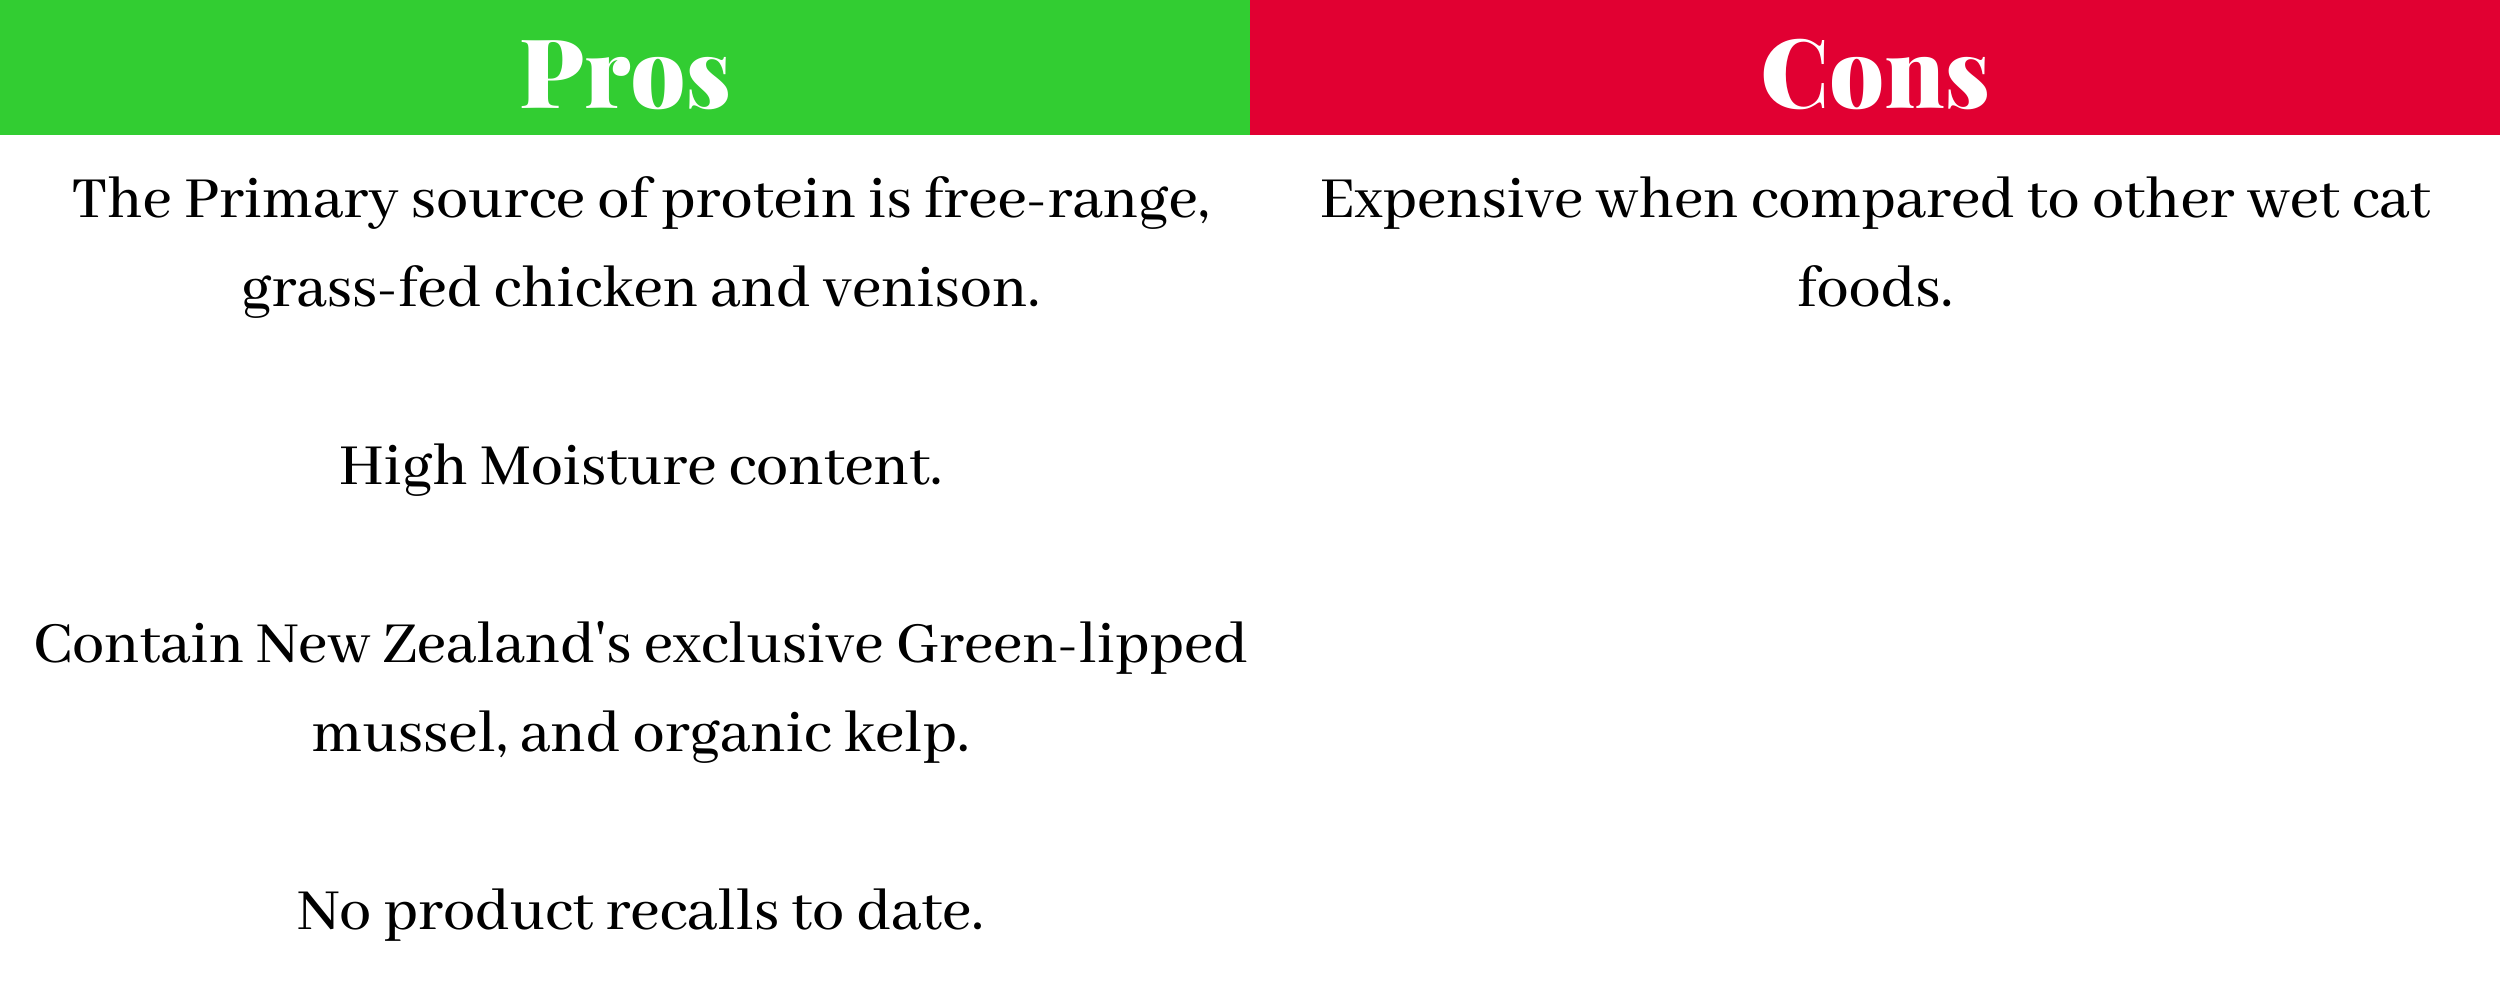 Pros and Cons of Feline Natural Chicken & Venison Feast Grain-Free Canned Cat Food